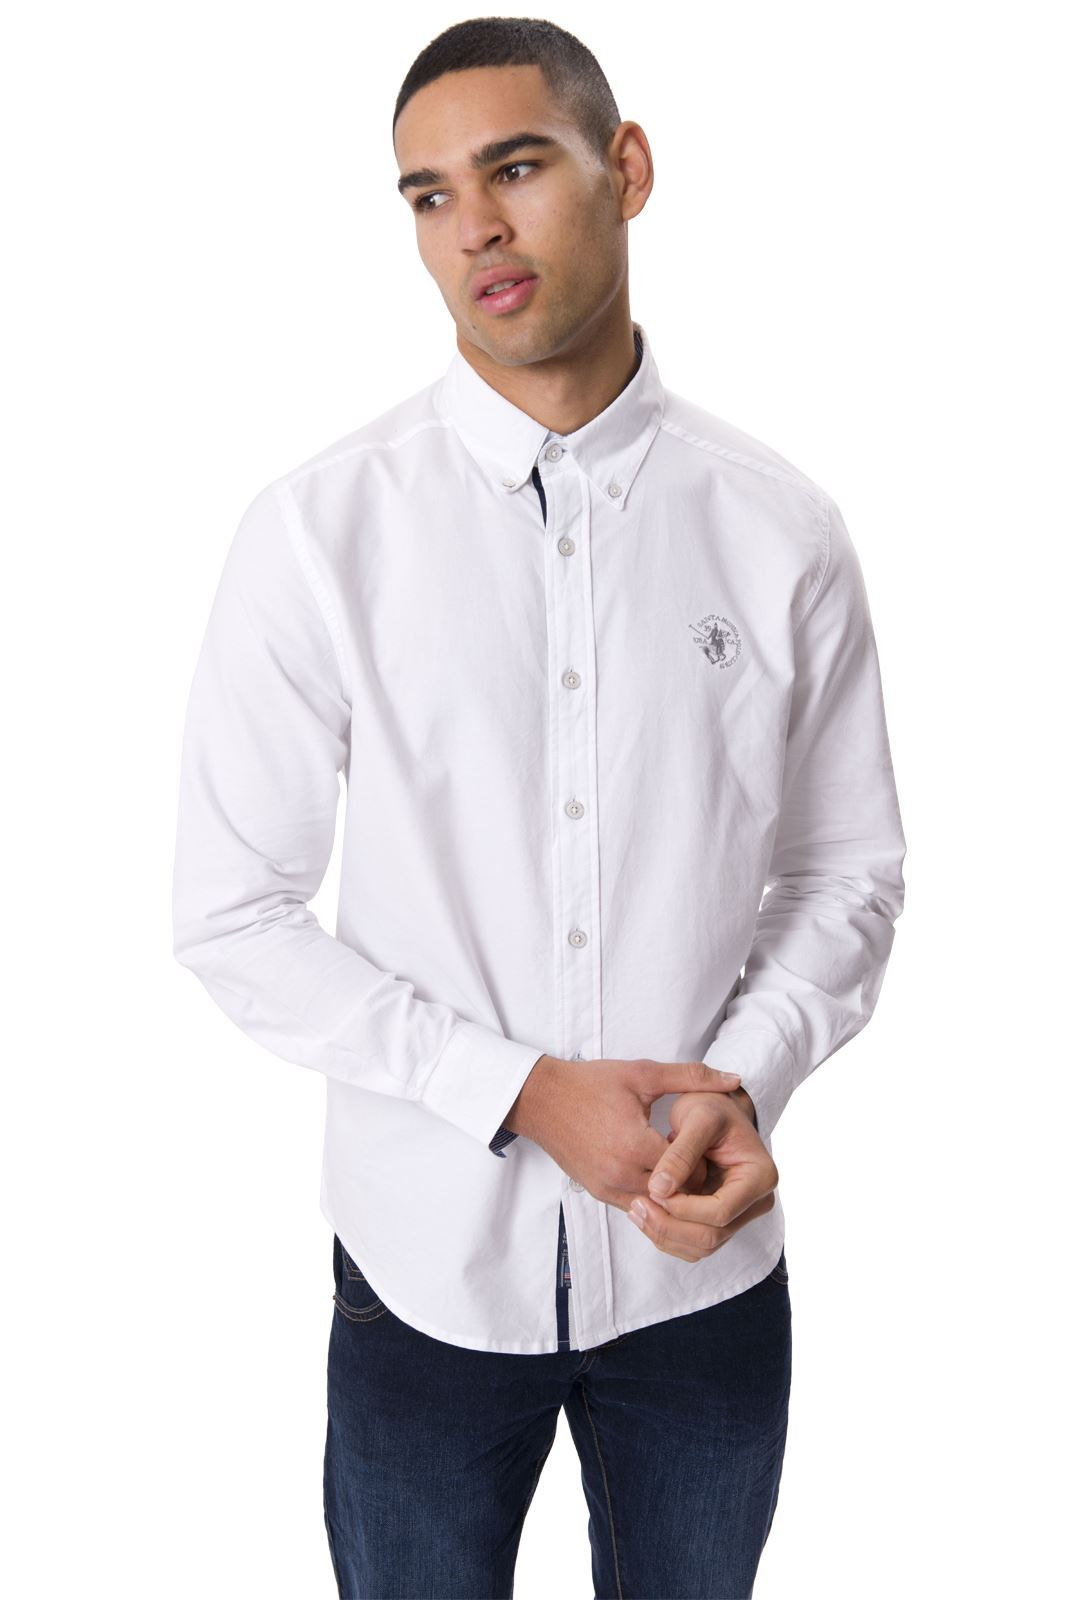 Collarless Shirts The traditional look for business is a collared shirt. Today, men and women have a variety of options, like collarless shirts, available to them to change up this classic look.